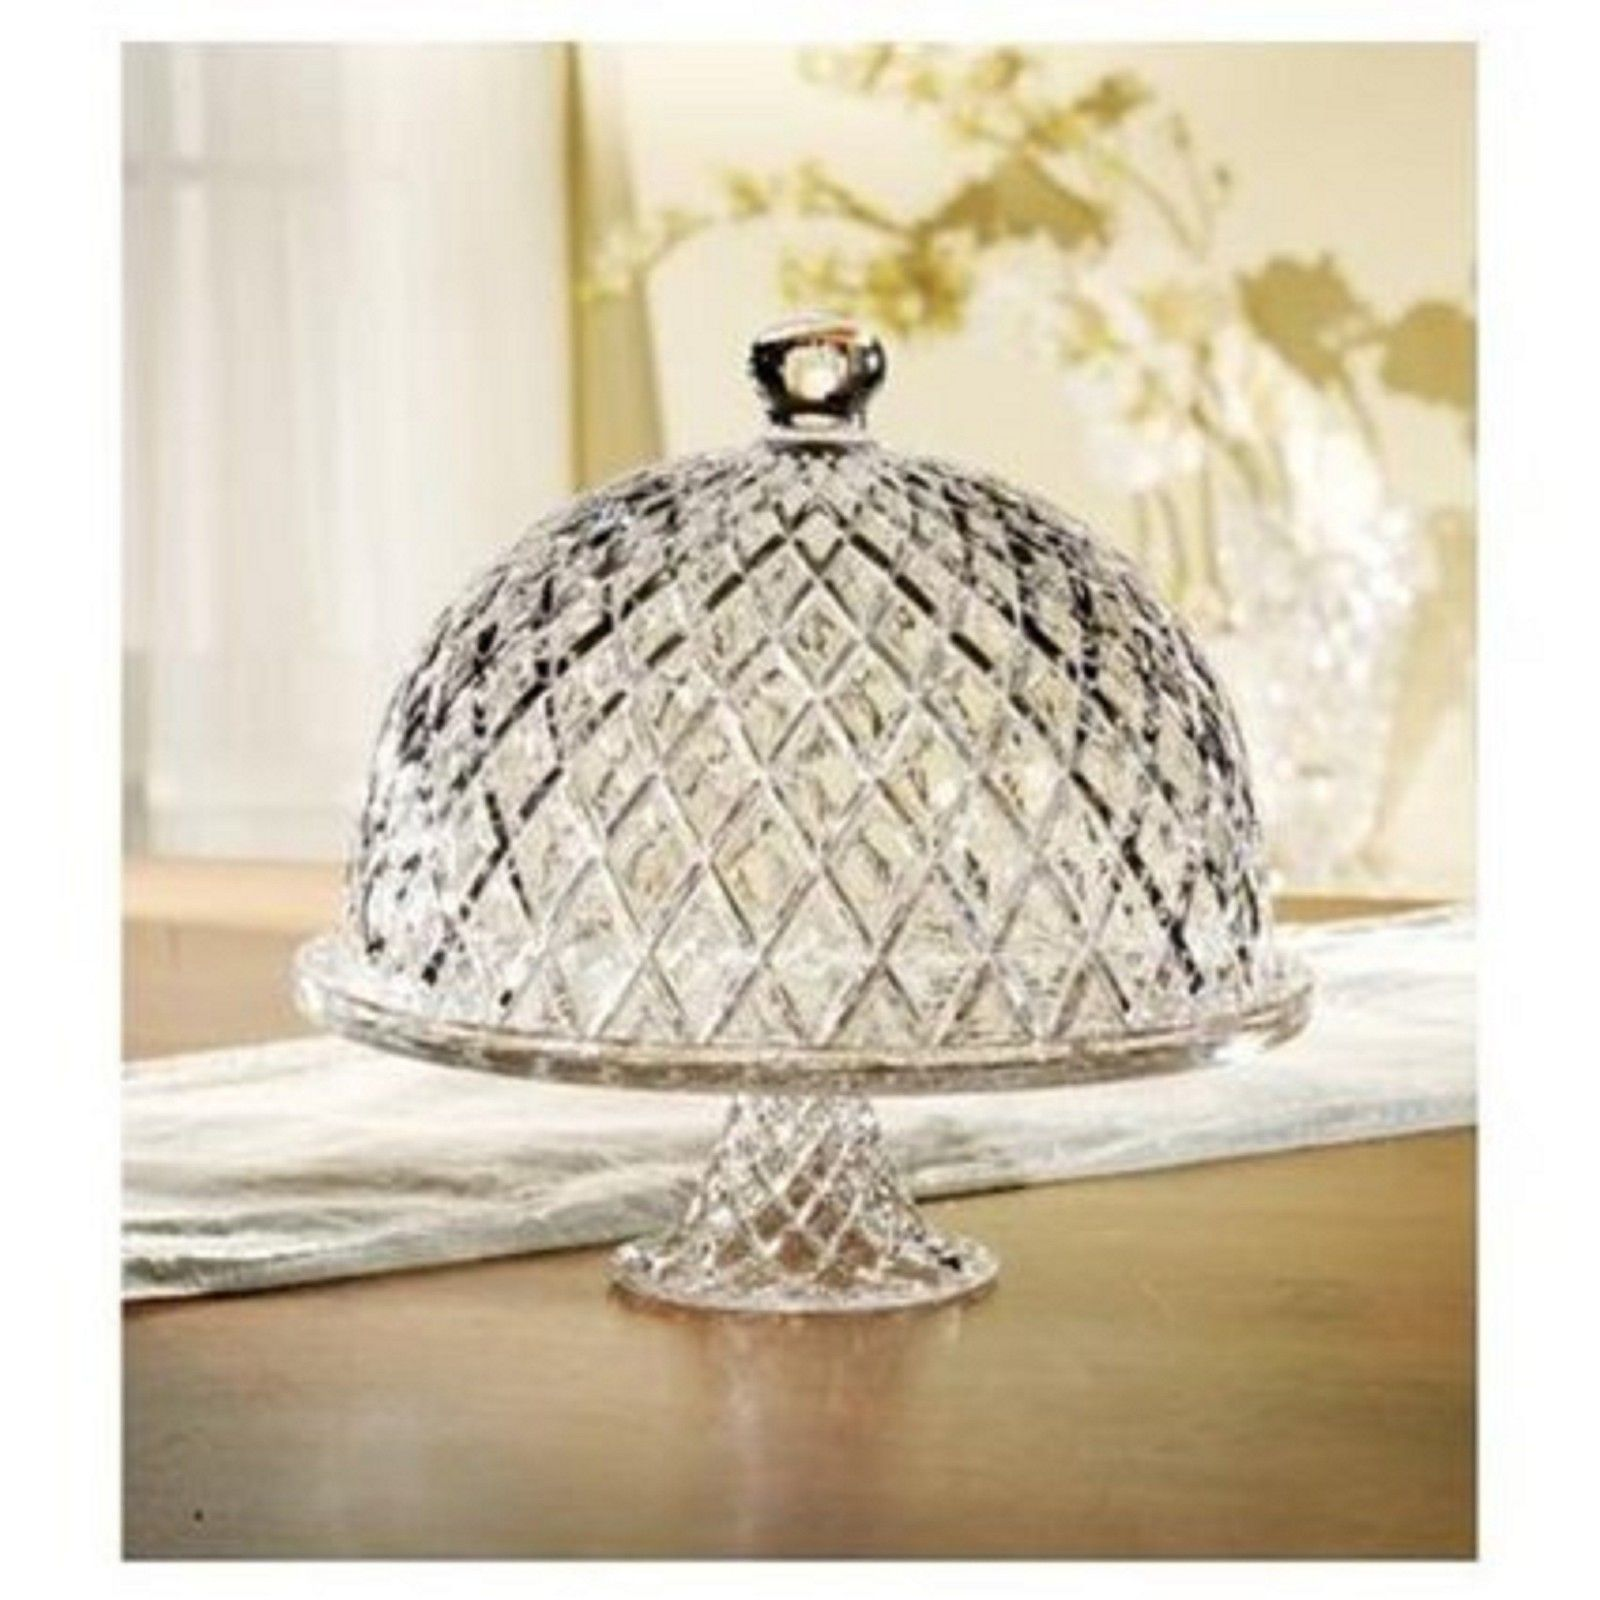 dome appearance pedestal one crystal cake beautiful as stands weaknesses with i can in pass lies stand previous steel of stainless matter no hardly up mentioned what my critic posts the